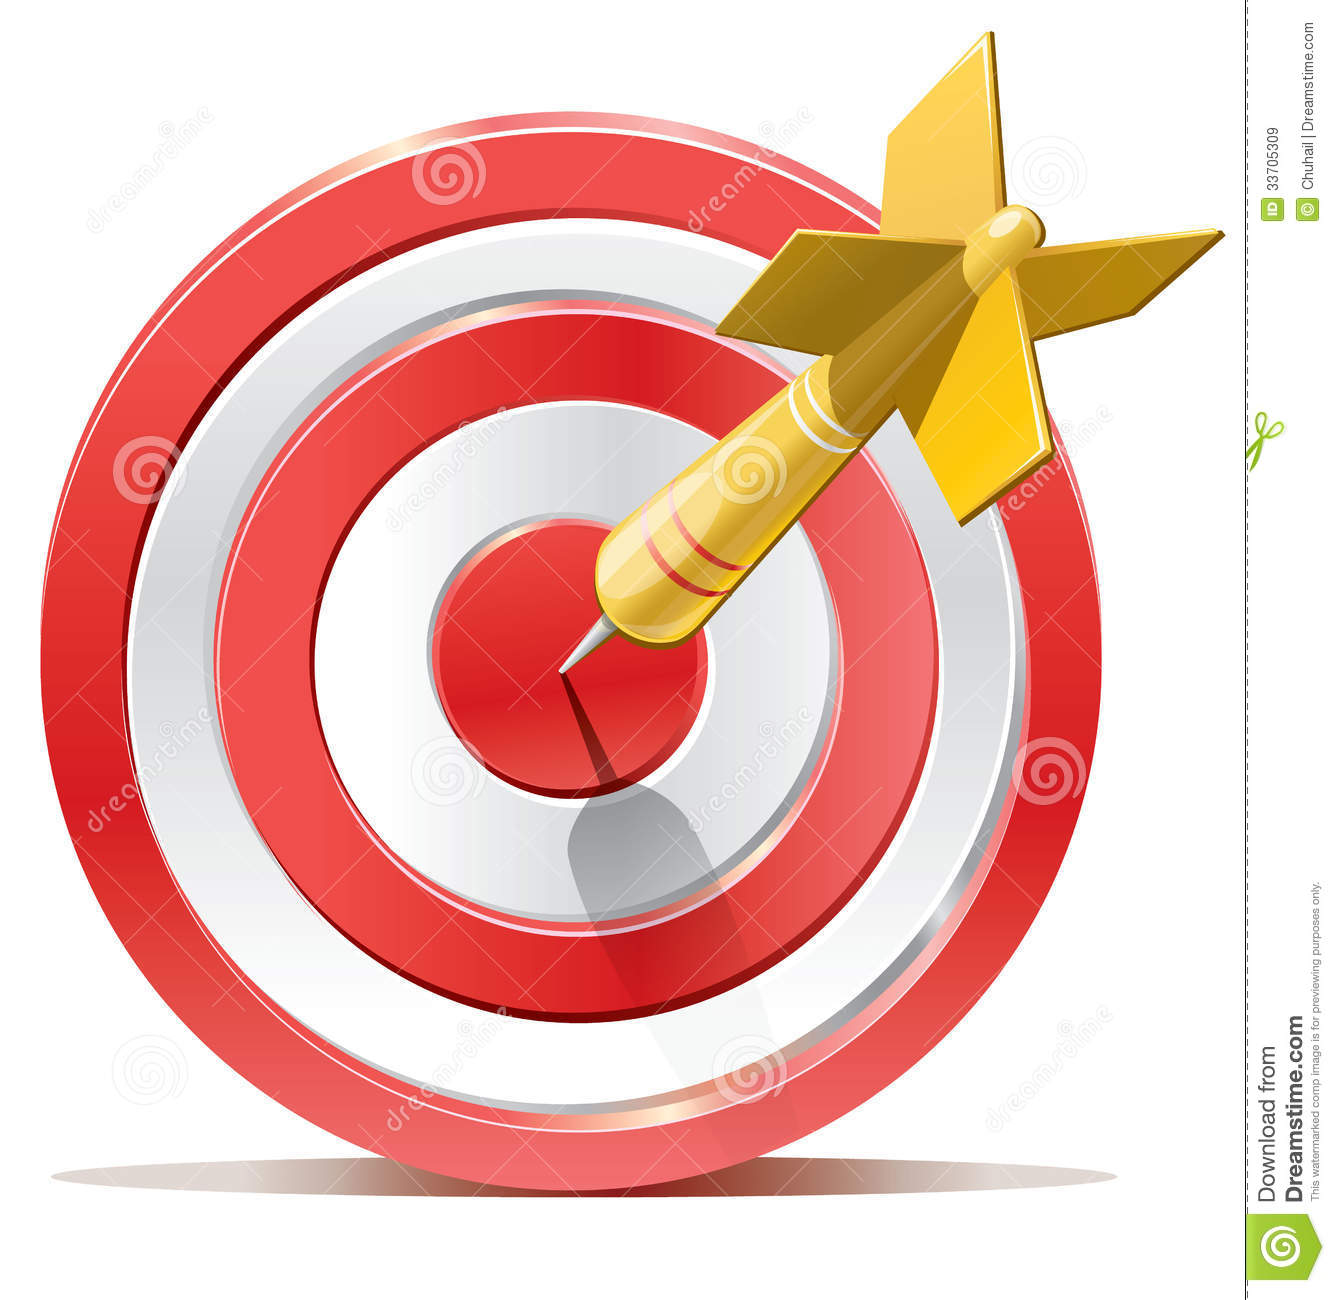 Red Darts Target Aim Royalty Free Stock Images - Image: 33705309